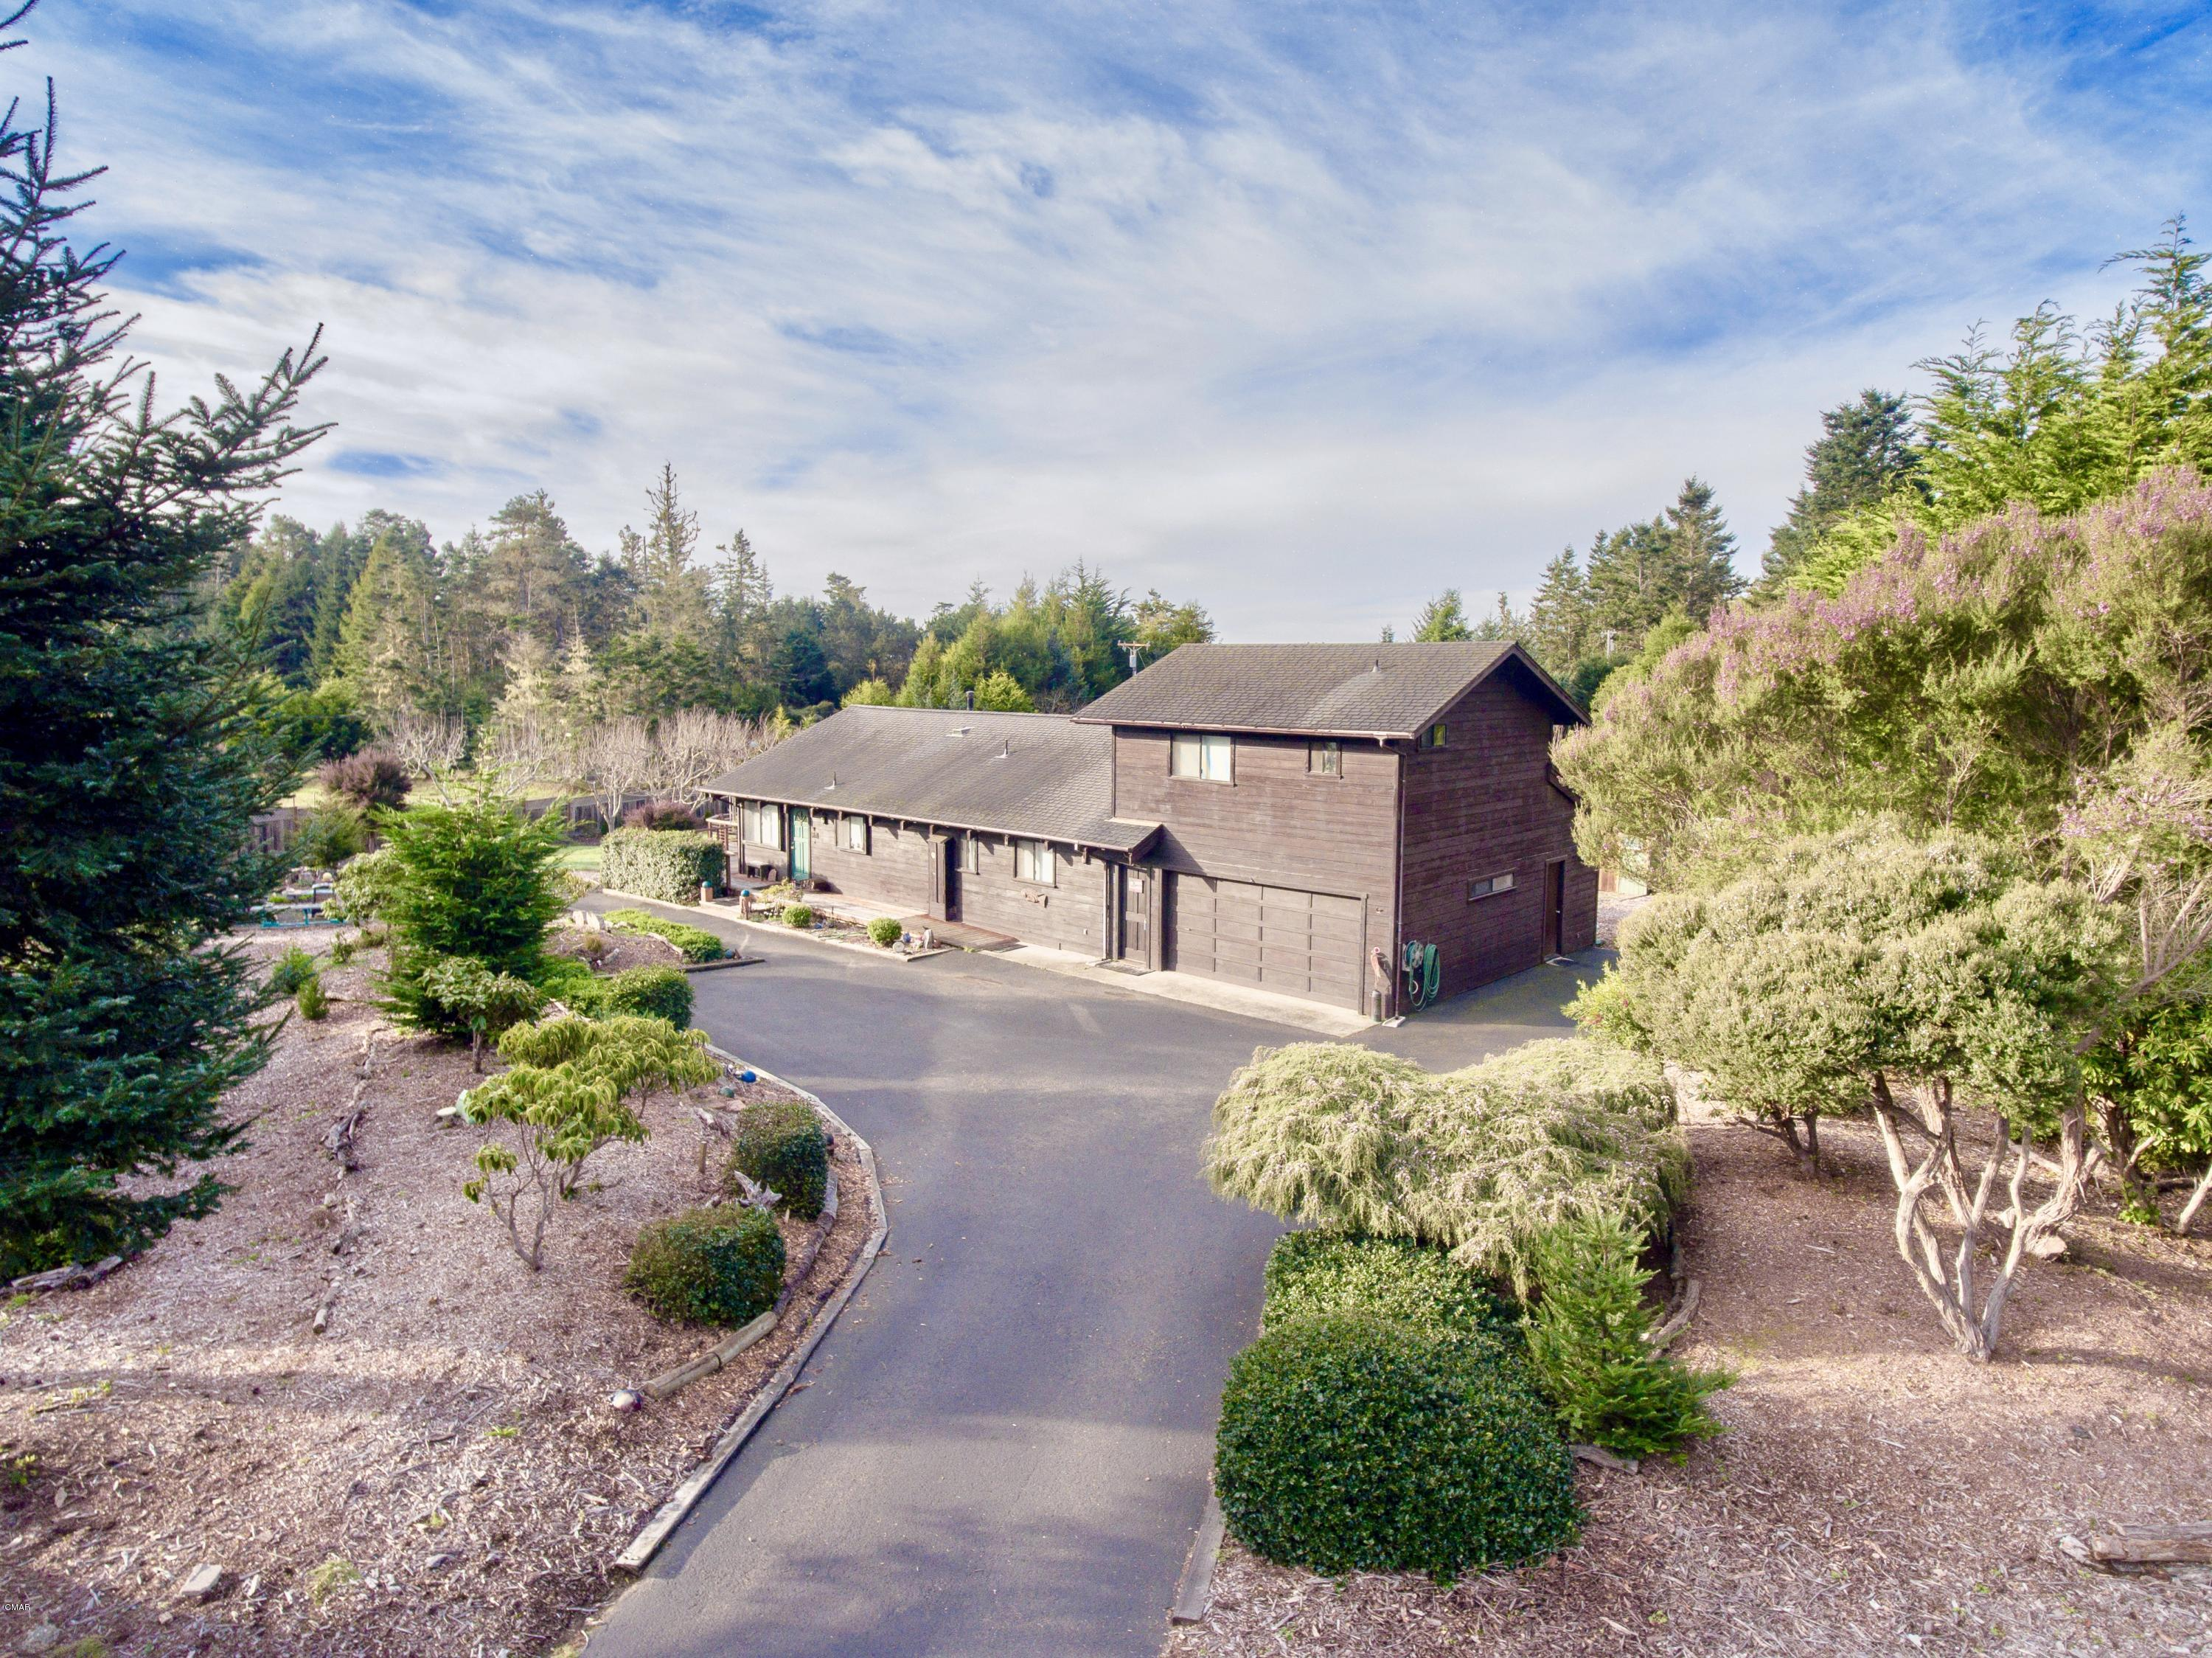 Single Family Home for Sale at 13150 Point Cabrillo Drive 13150 Point Cabrillo Drive Mendocino, California 95460 United States